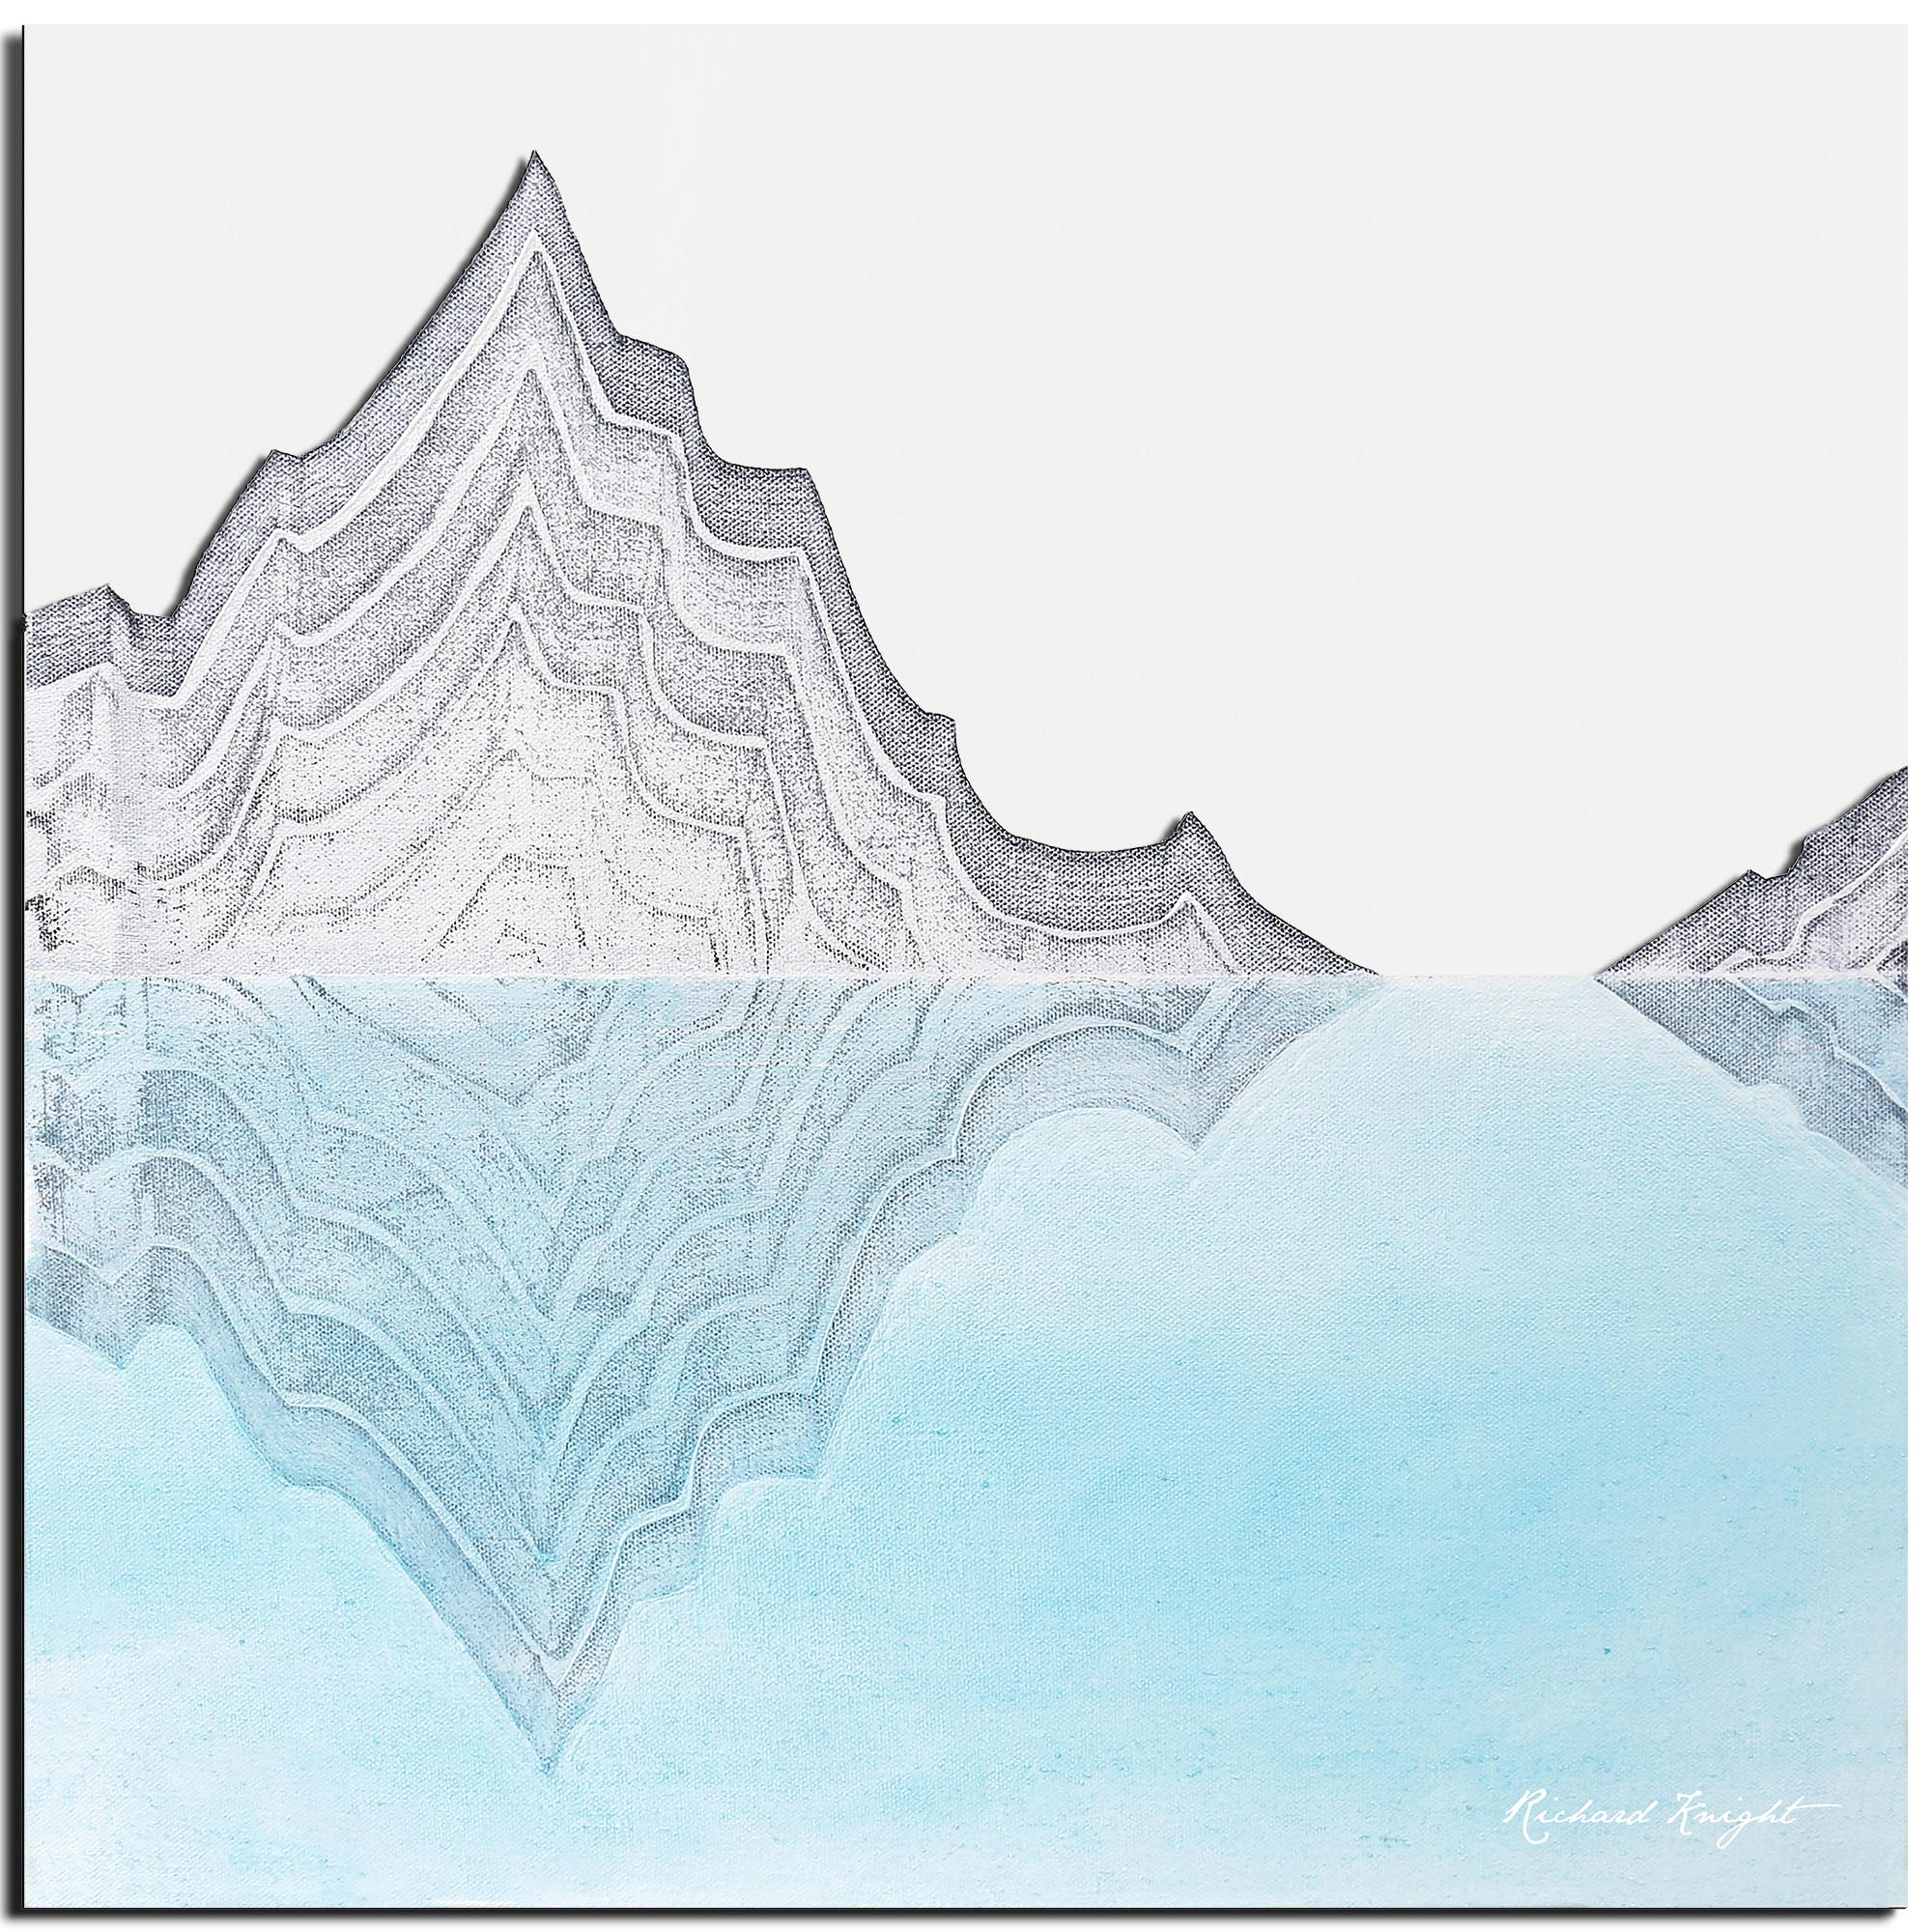 Richard Knight 'Glacial Mountains' 22in x 22in Abstract Landscape Art on Polymetal